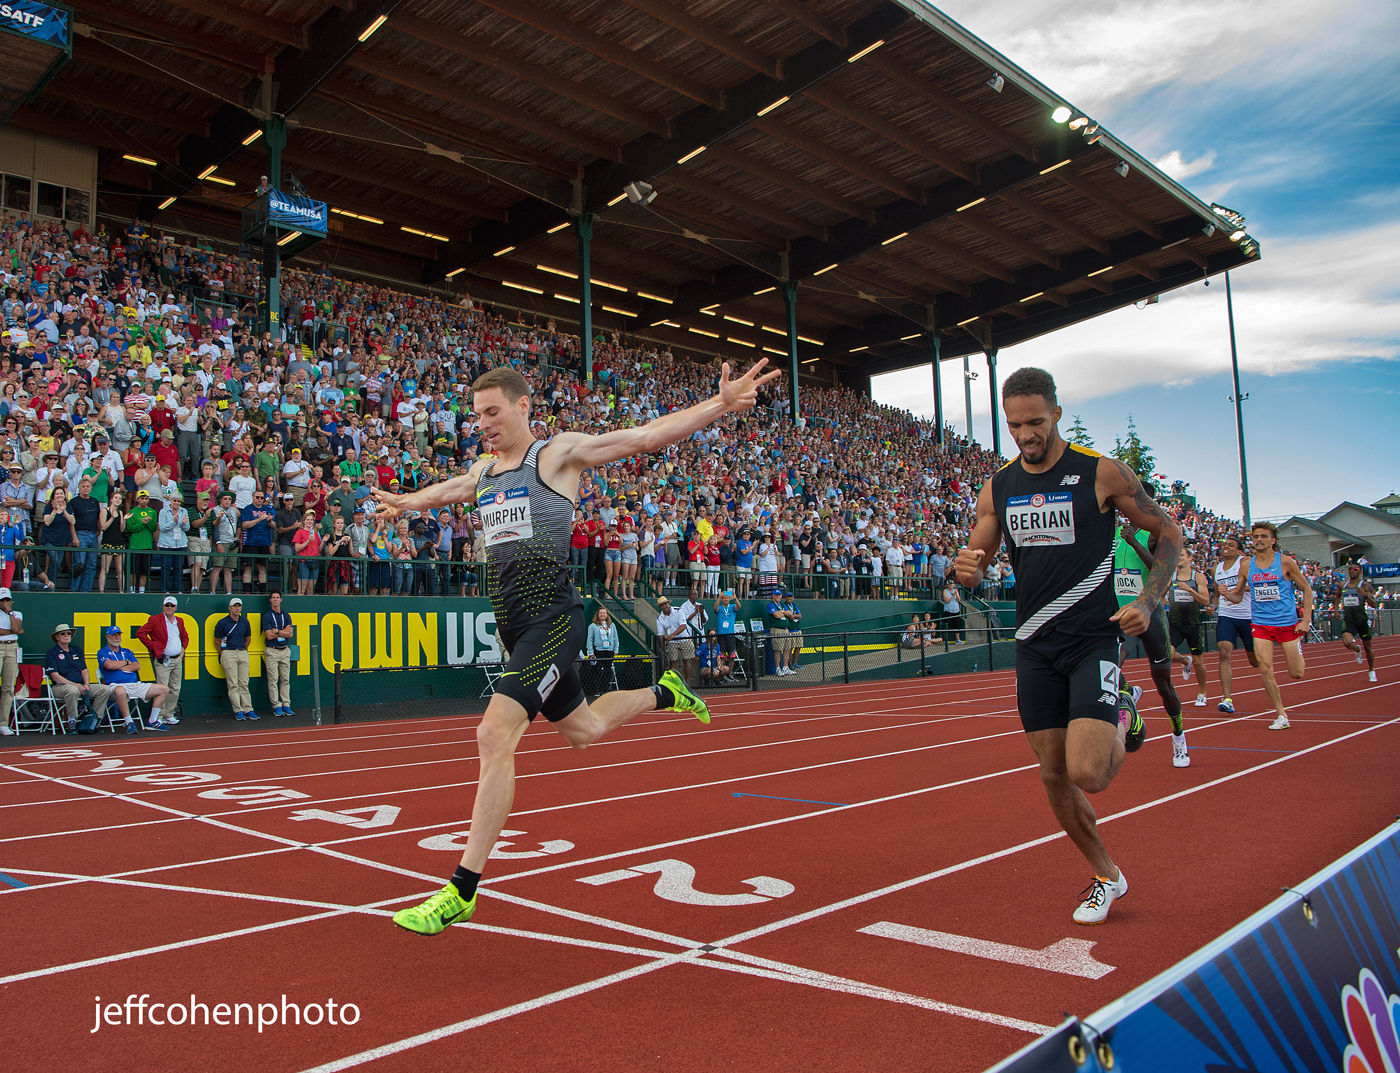 1r2016_oly_trials_day_4_800m_finish_jeff_cohen_photo_16424_web.jpg